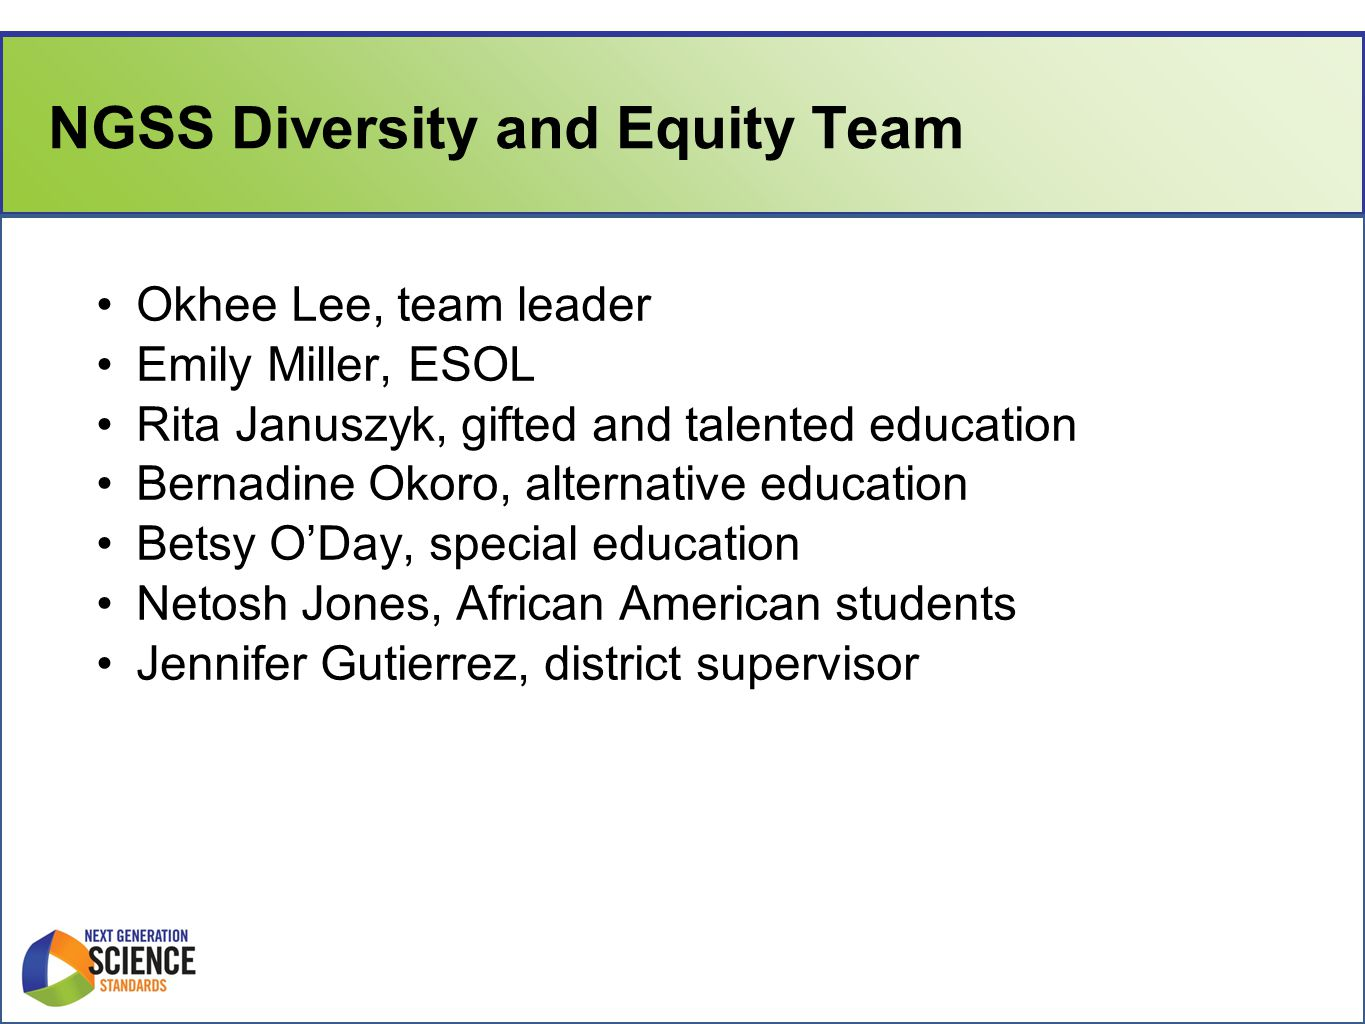 NGSS Diversity and Equity Team Okhee Lee, team leader Emily Miller, ESOL Rita Januszyk, gifted and talented education Bernadine Okoro, alternative education Betsy O'Day, special education Netosh Jones, African American students Jennifer Gutierrez, district supervisor